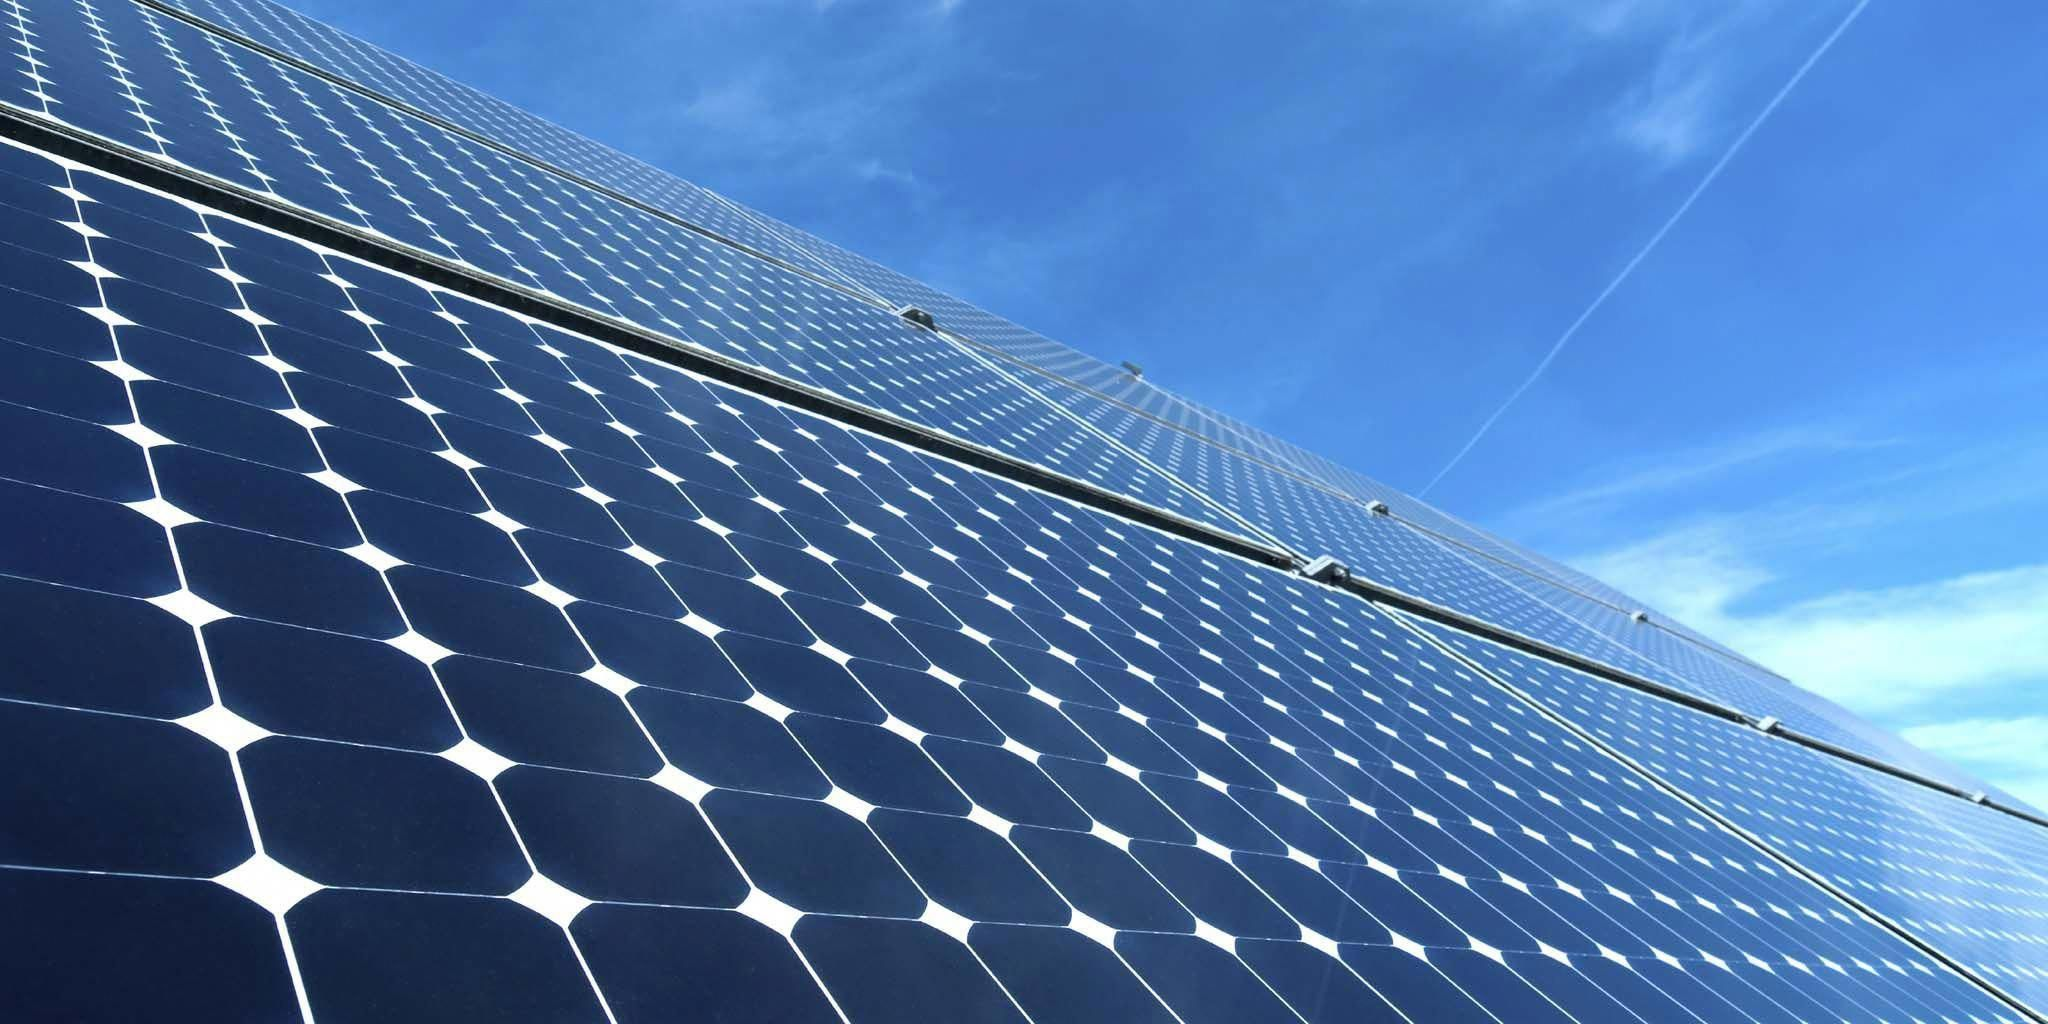 Get Solar Panels In Melbourne From Solar Engineers The Best Solar Company In Melbourne We Provide Innovative Solar P In 2020 Solar Panels Solar Installation Solar